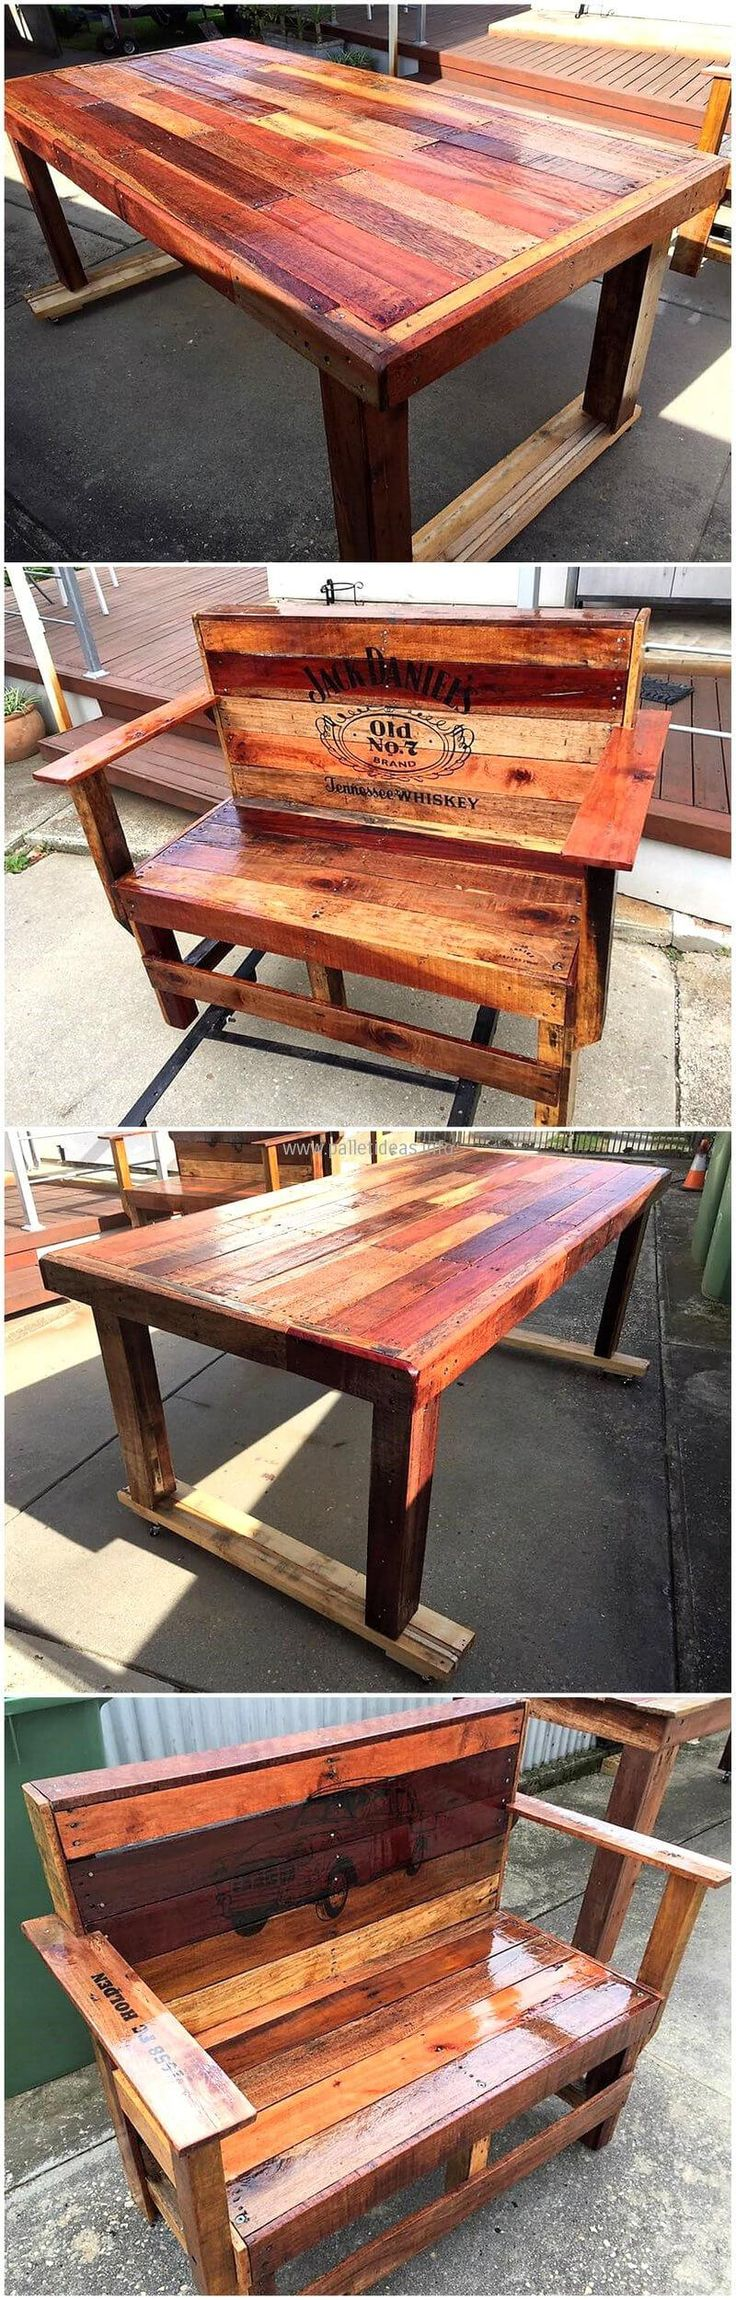 Incredible Wood Pallet Ideas and Projects 373